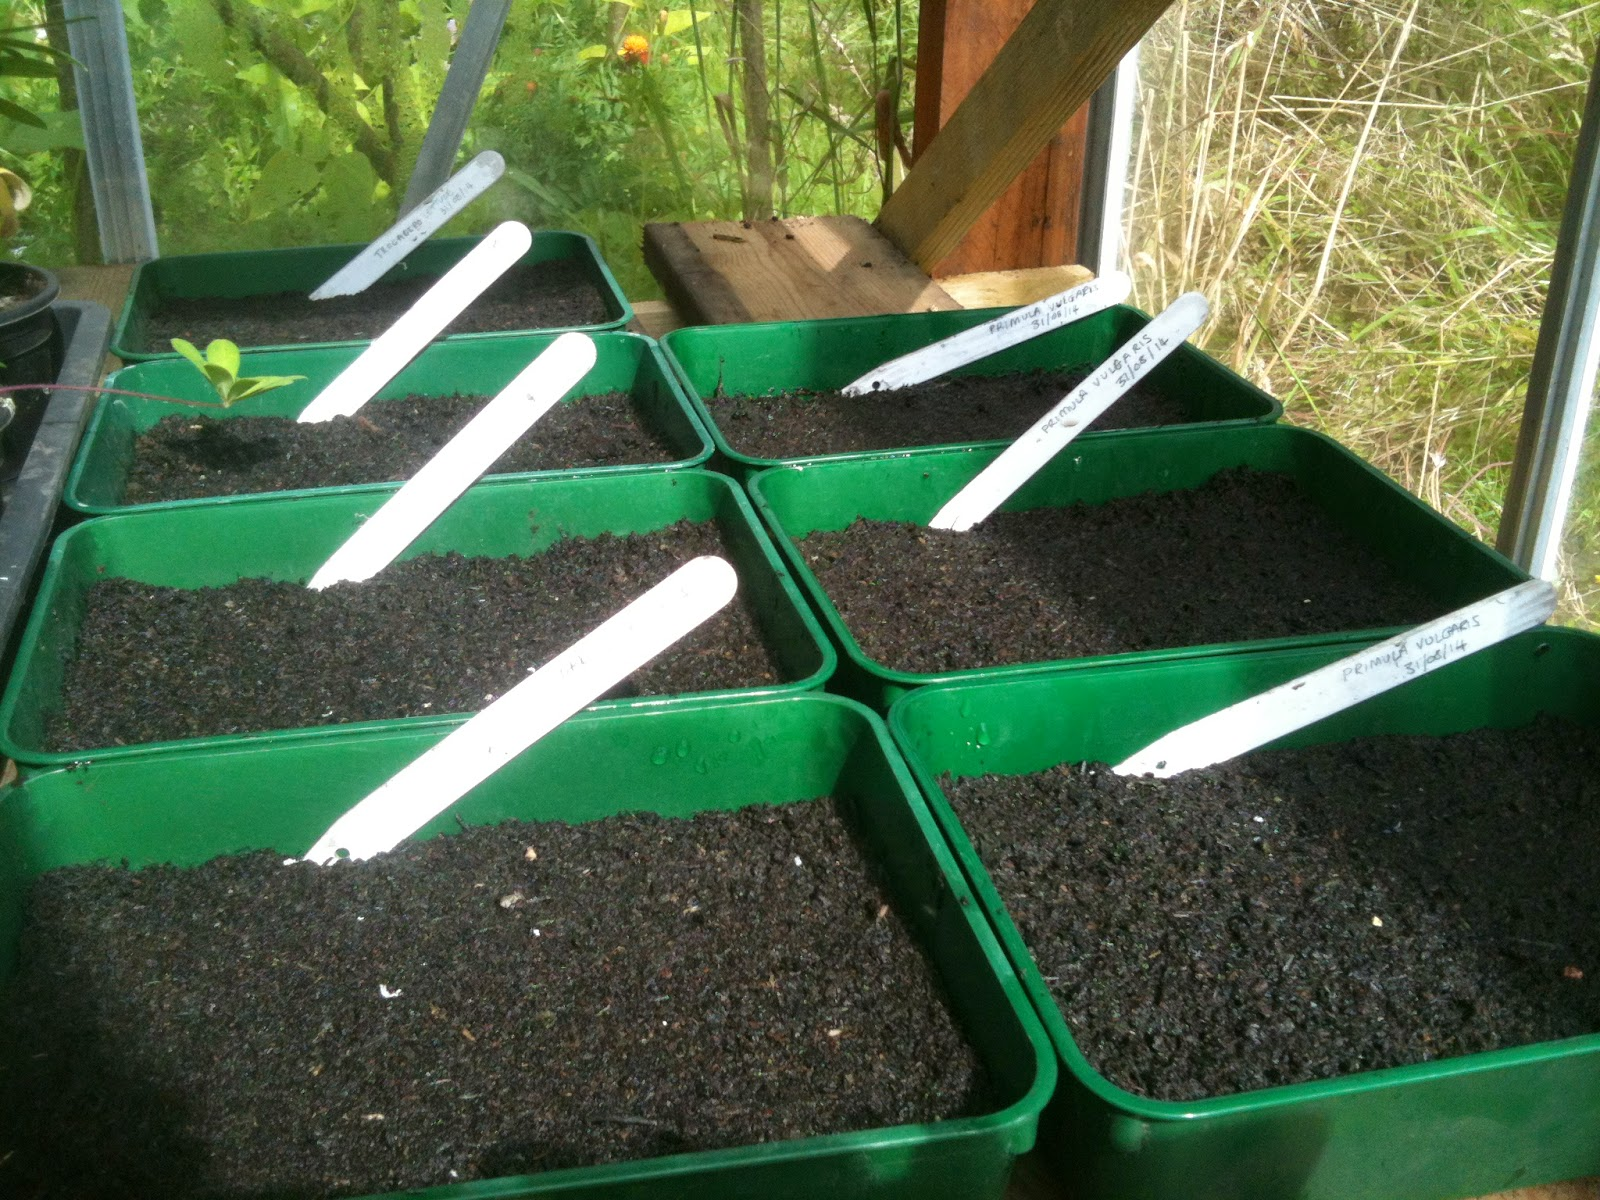 Sowing seeds saves money and means you have plants for next spring.